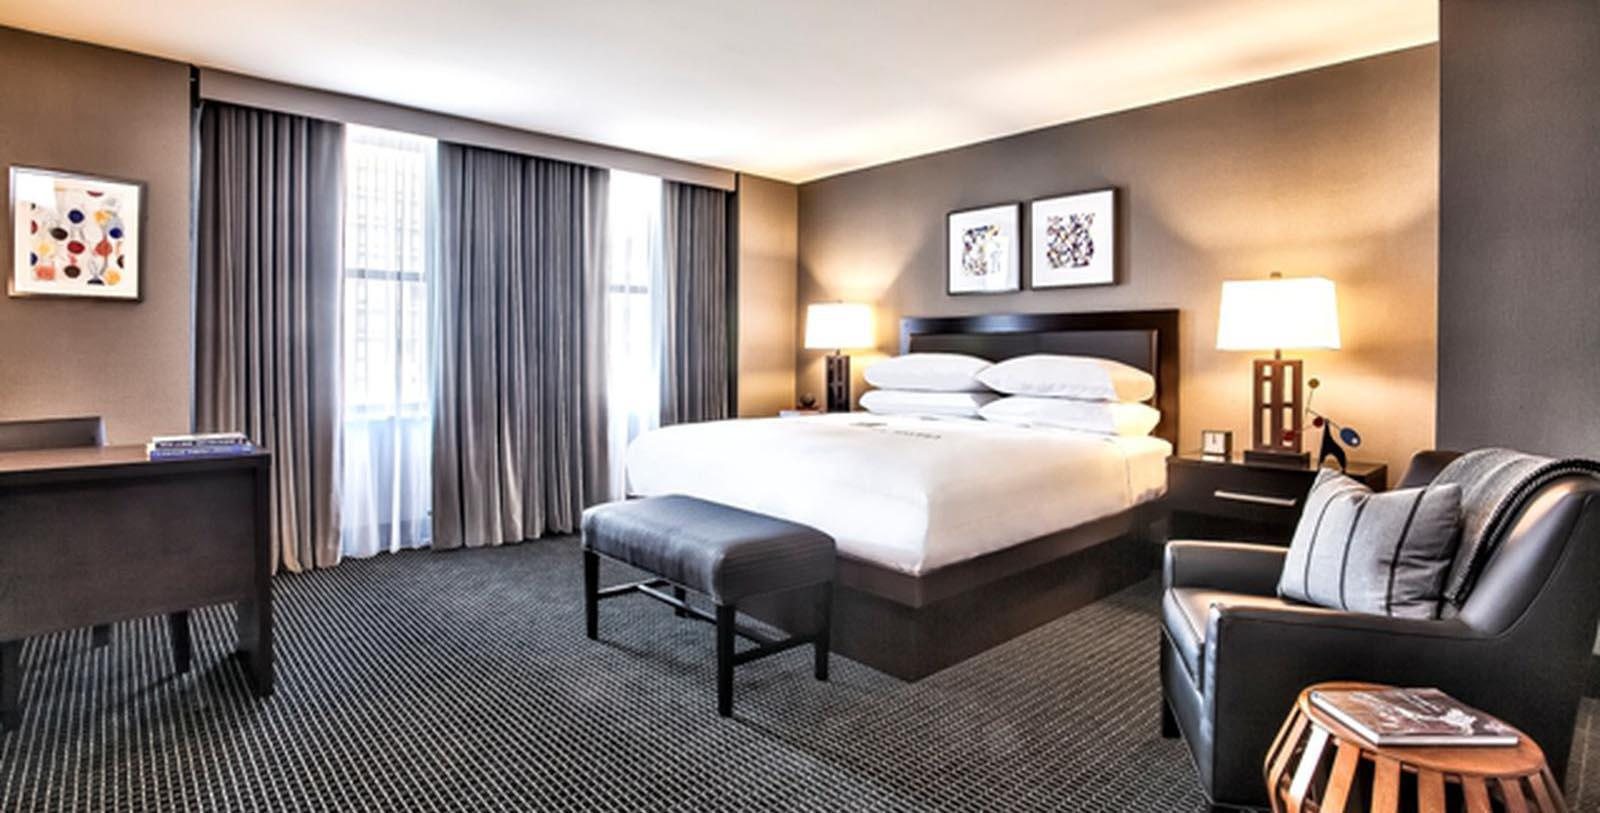 Image of Guestroom Interior, Lord Baltimore Hotel in Baltimore, Maryland, 1928, Member of Historic Hotels of America, Location Map